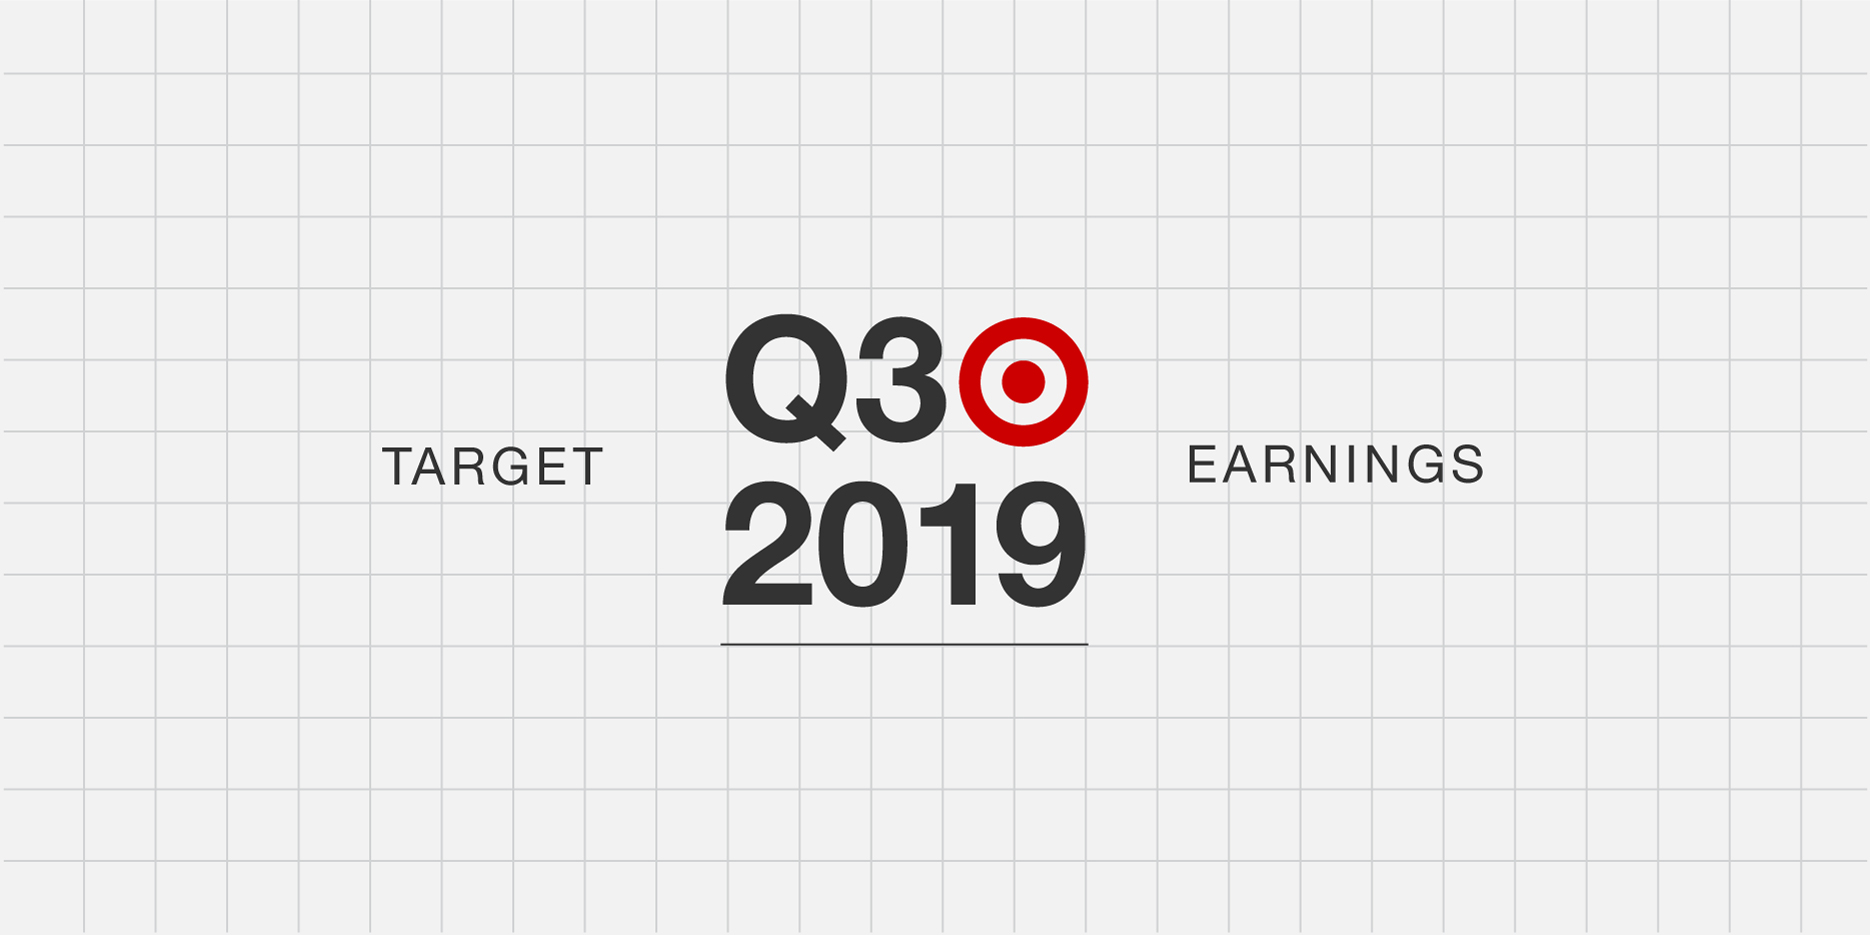 Gray gird lines with red bullseye logo and black text: Target Q3 2019 Earnings